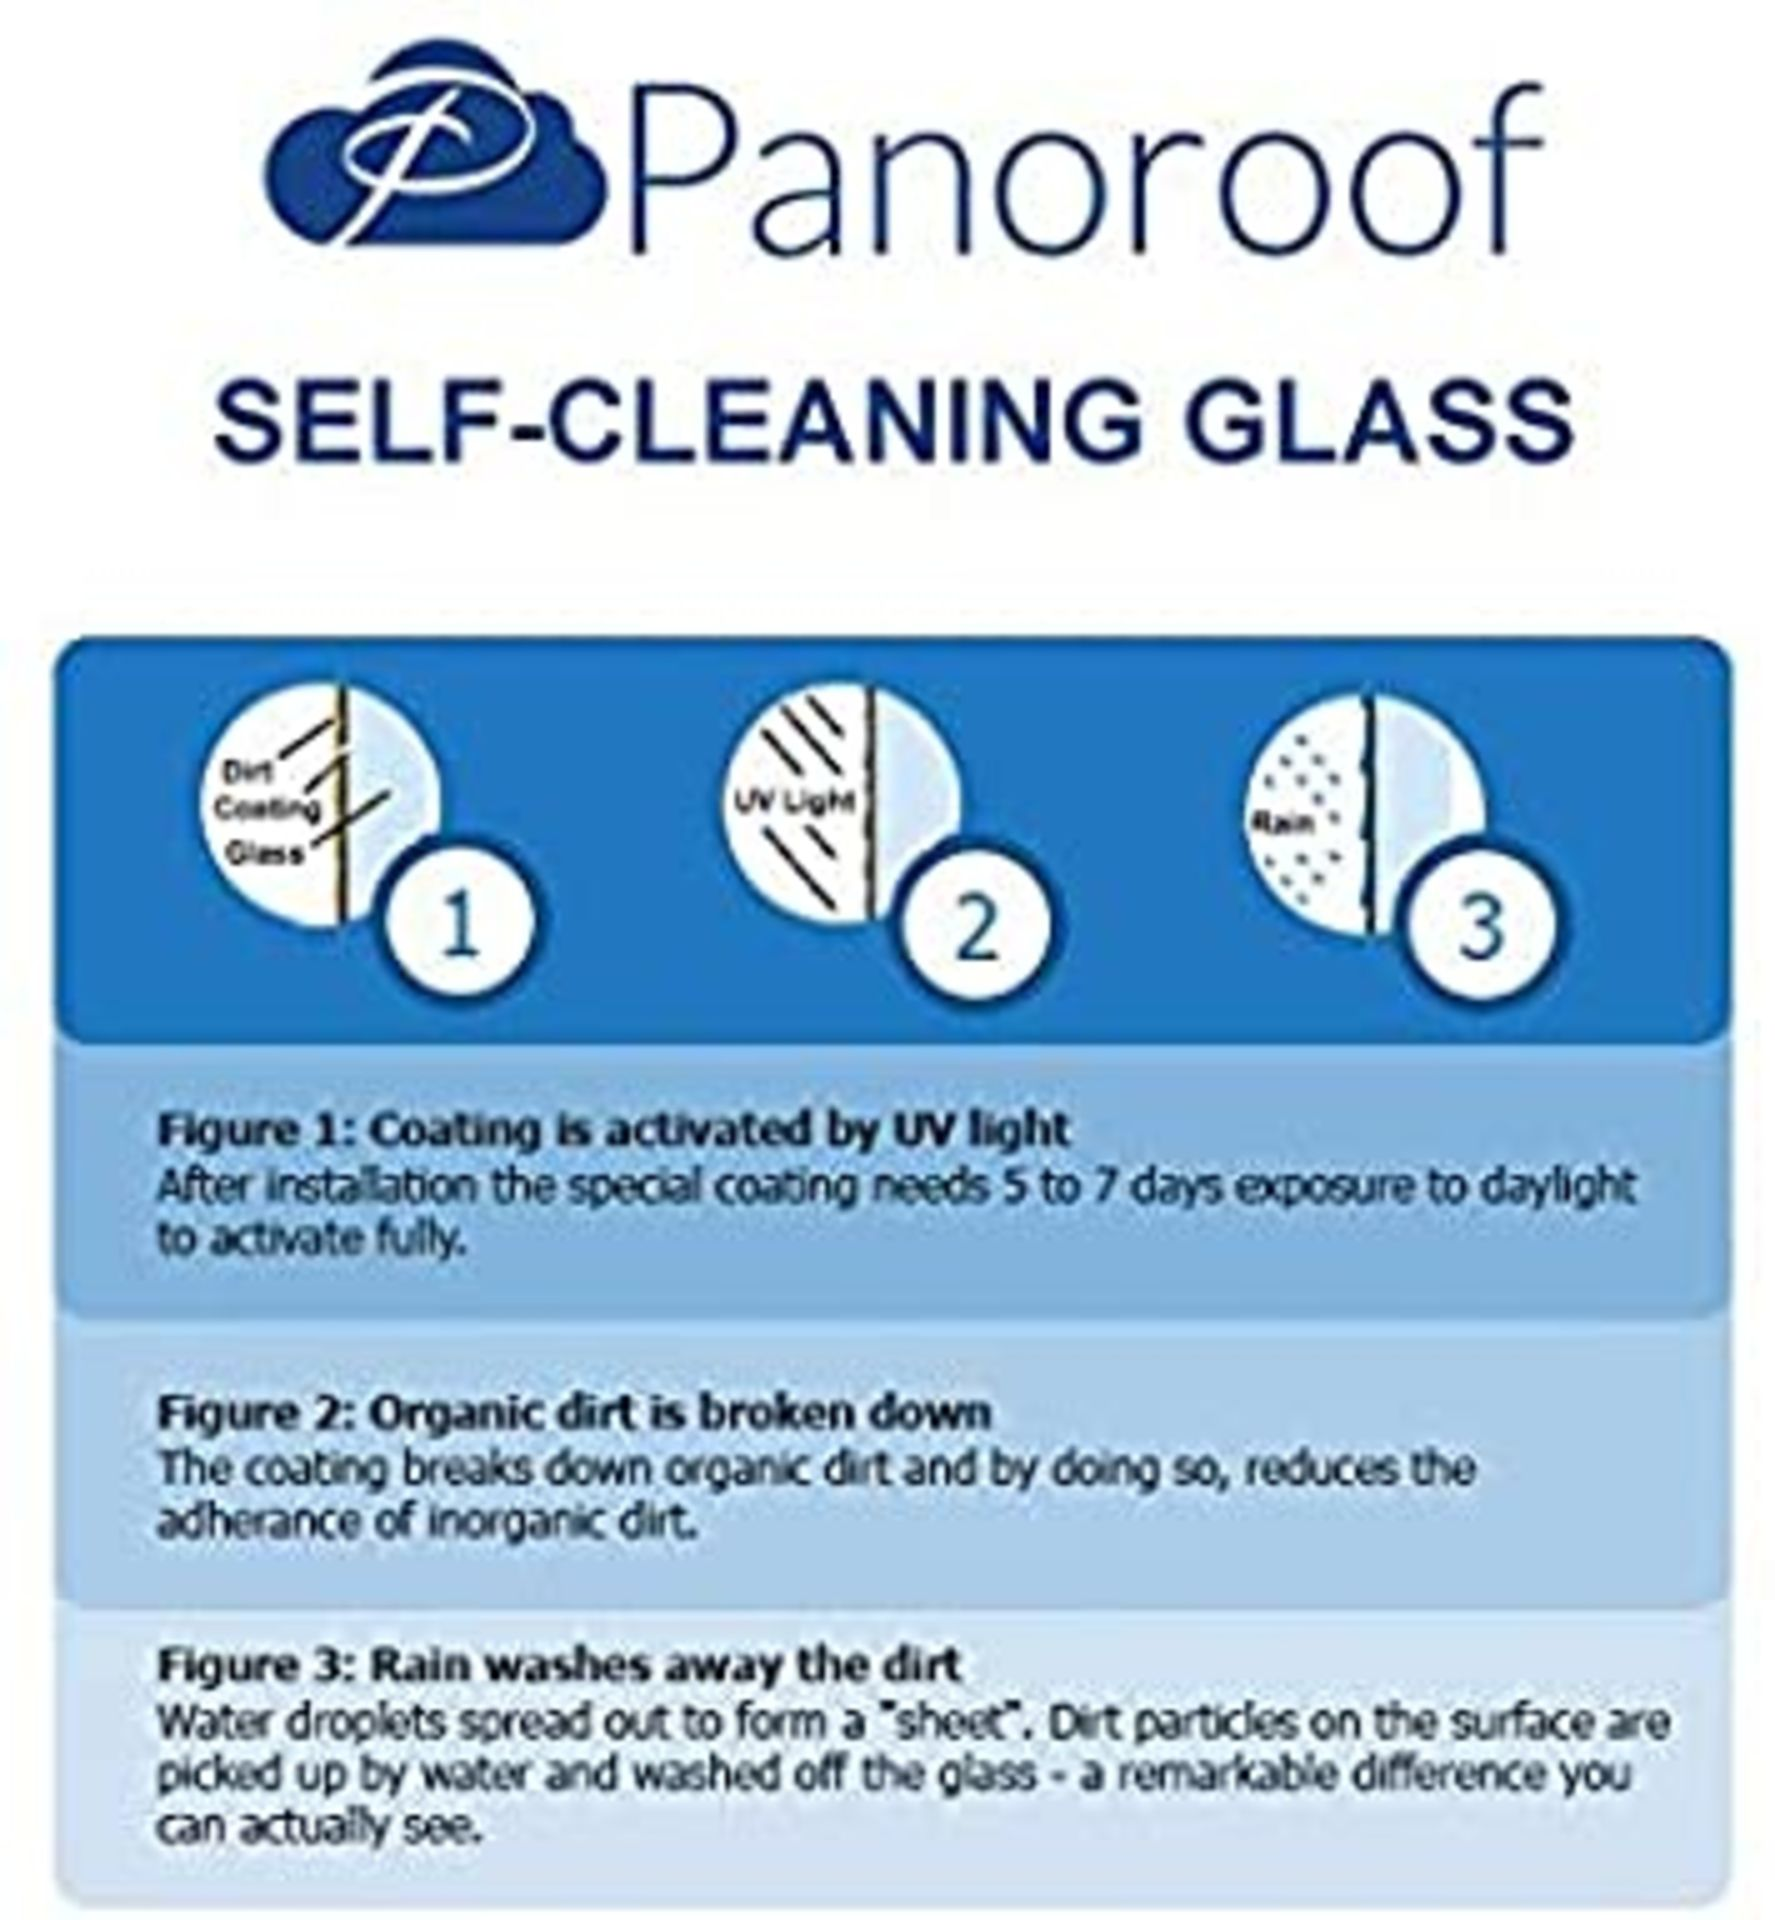 Panoroof 1500x1500mm (inside Size Visable glass area) Seamless Glass Skylight Flat Roof Rooflight - Image 6 of 6